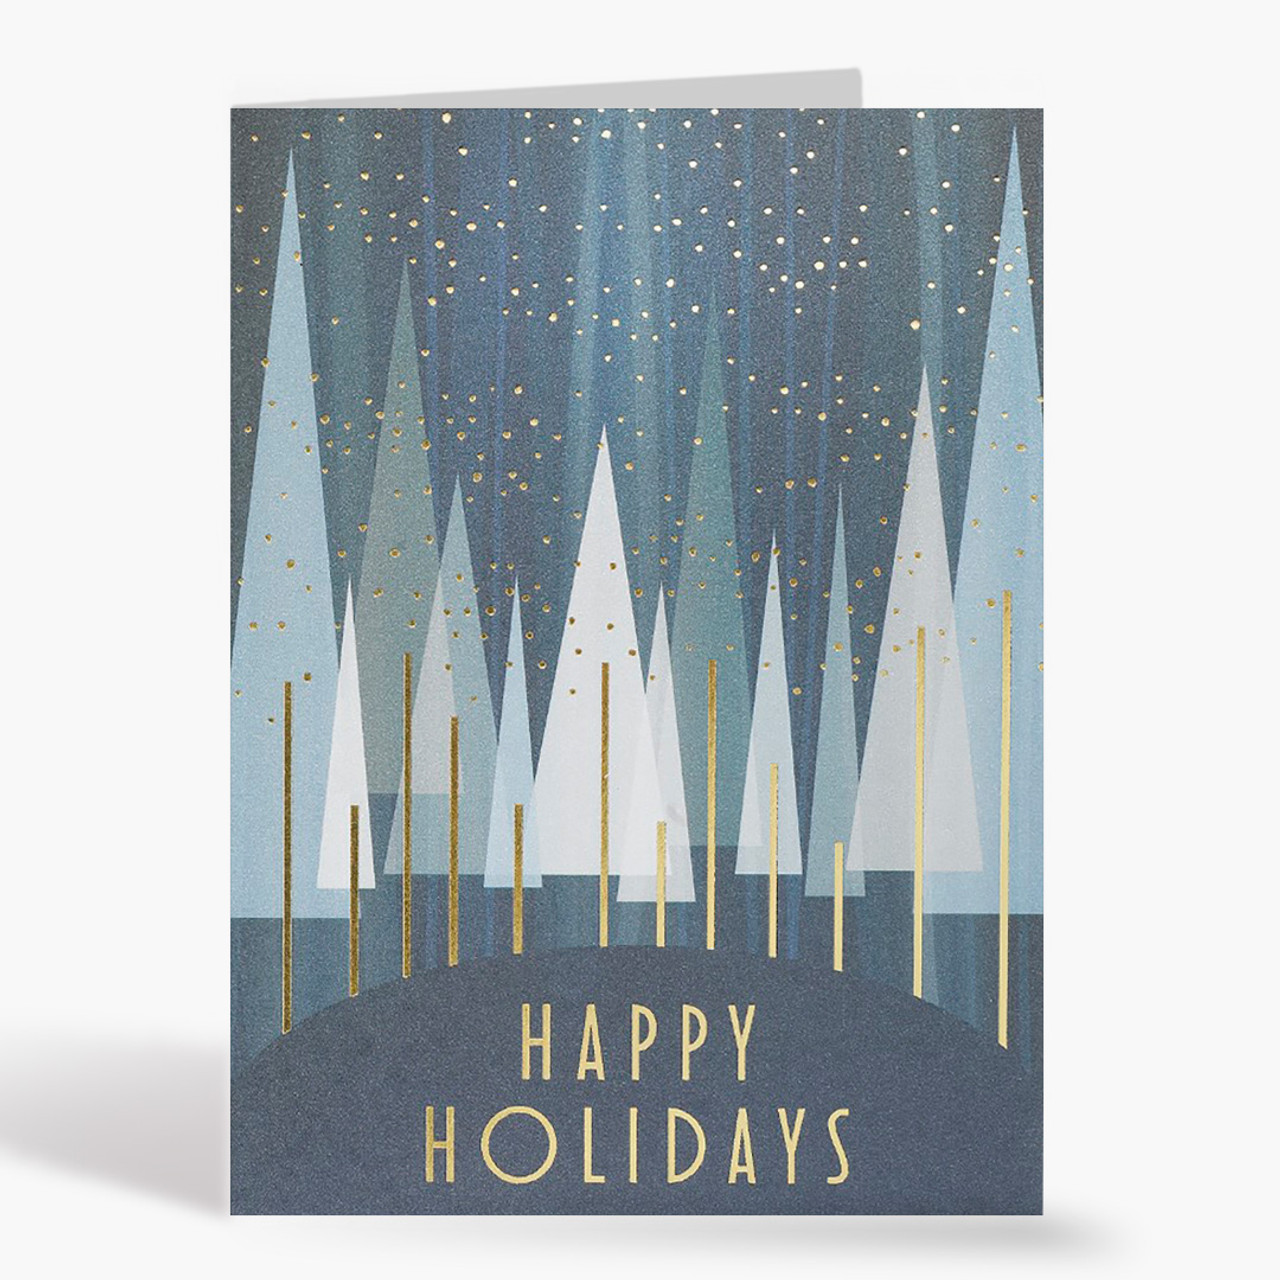 Happy Holidays Treeline Christmas Card